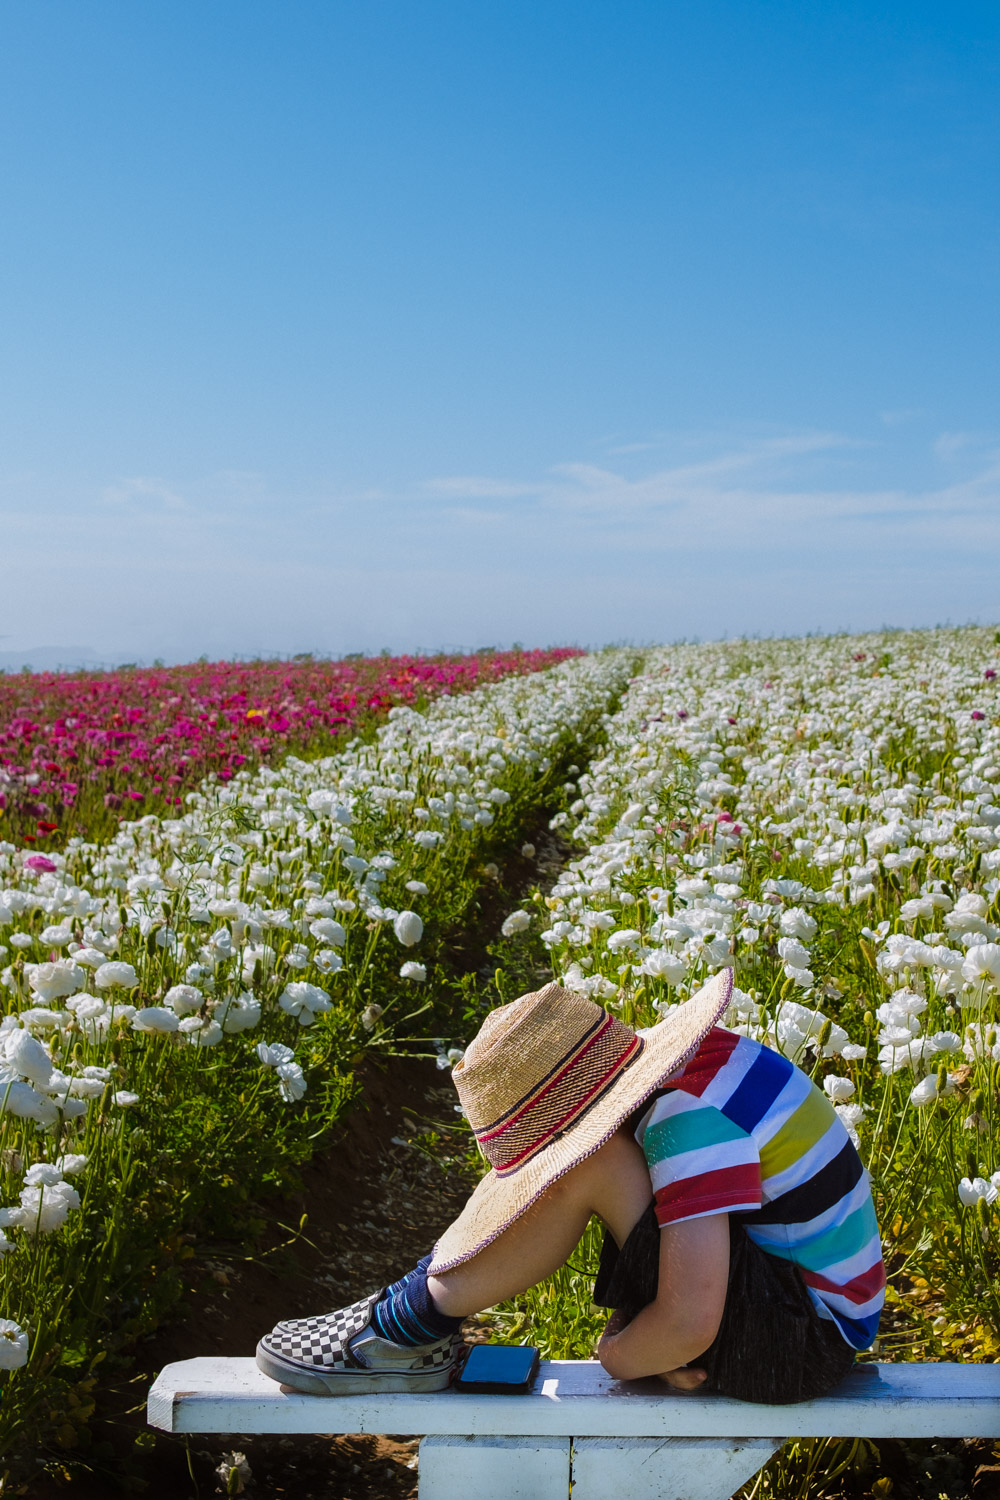 A boy at the Flower Fields